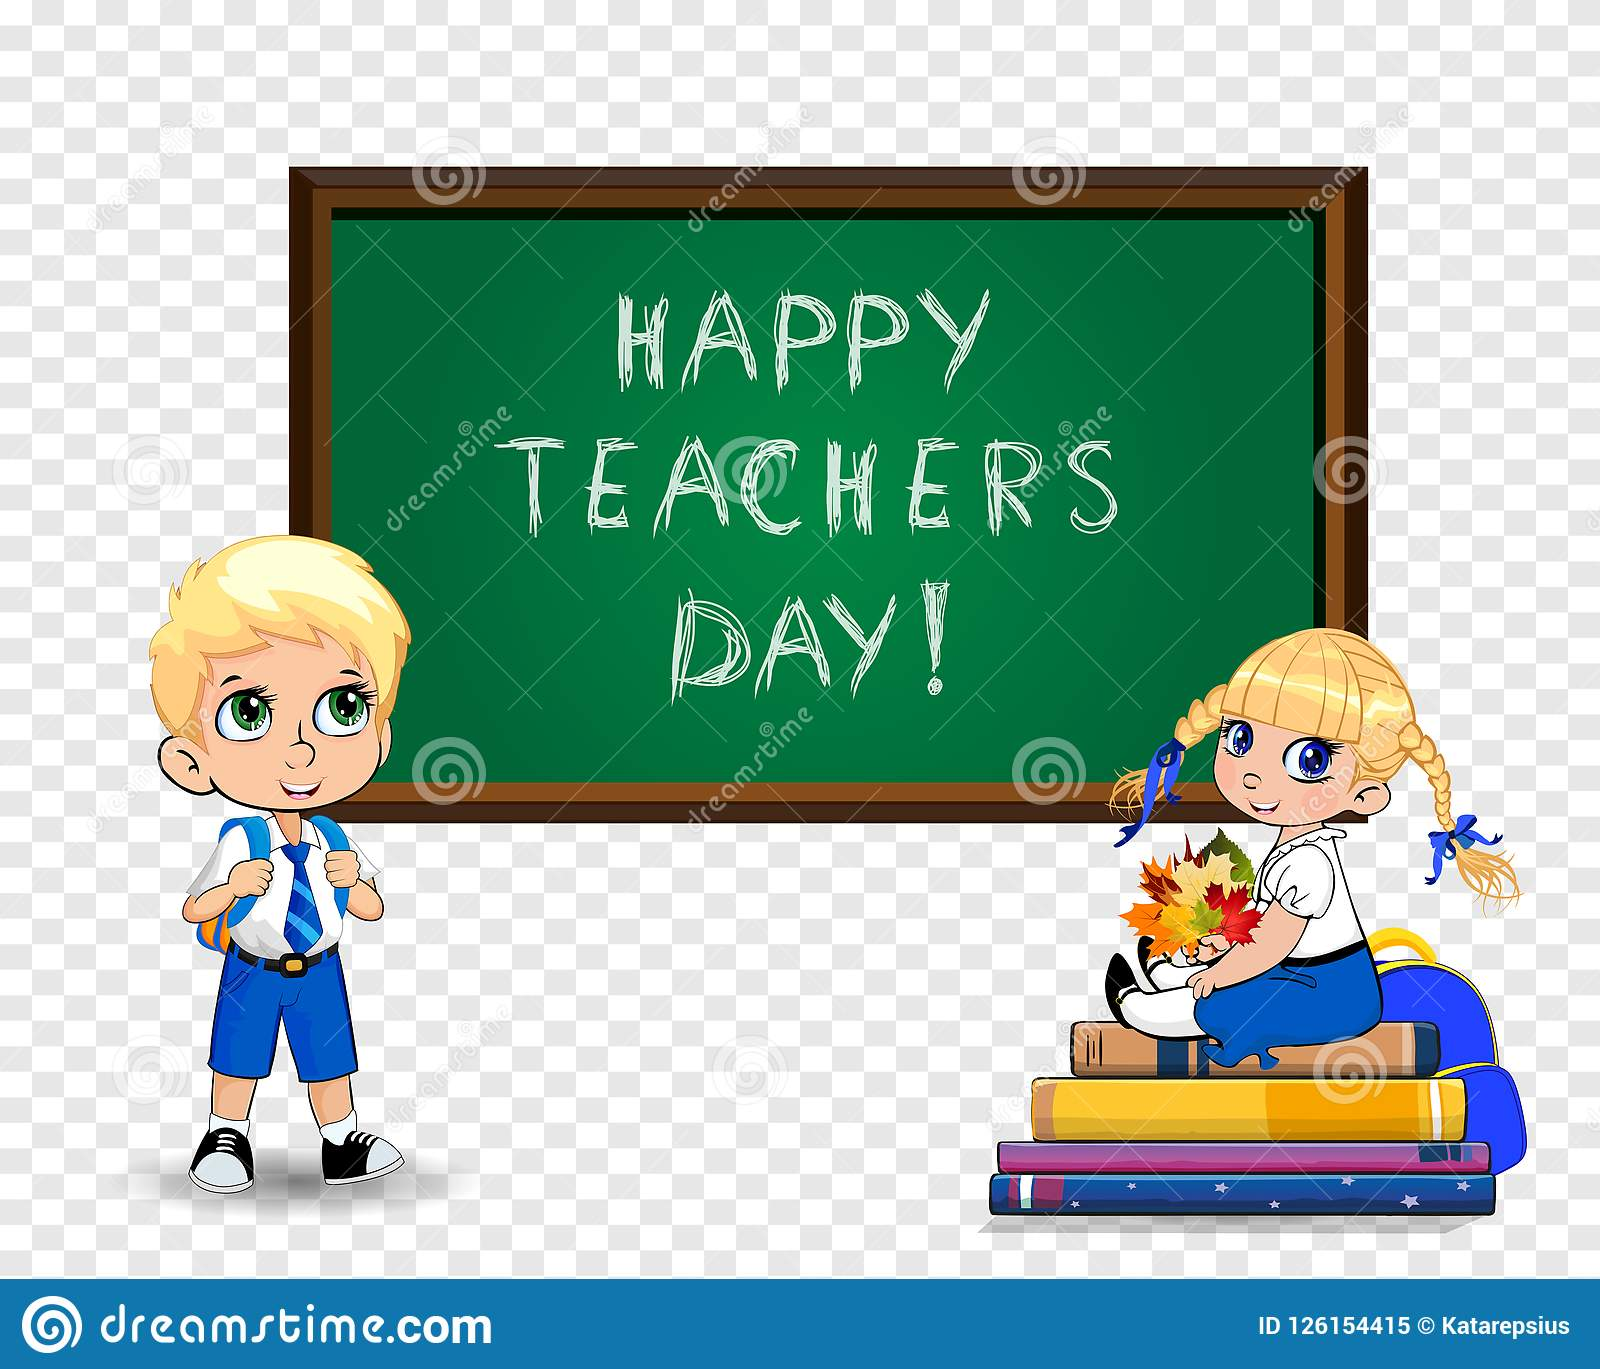 Happy teachers day greeting card clip art with cute cartoon school download happy teachers day greeting card clip art with cute cartoon school kids on transparent background m4hsunfo